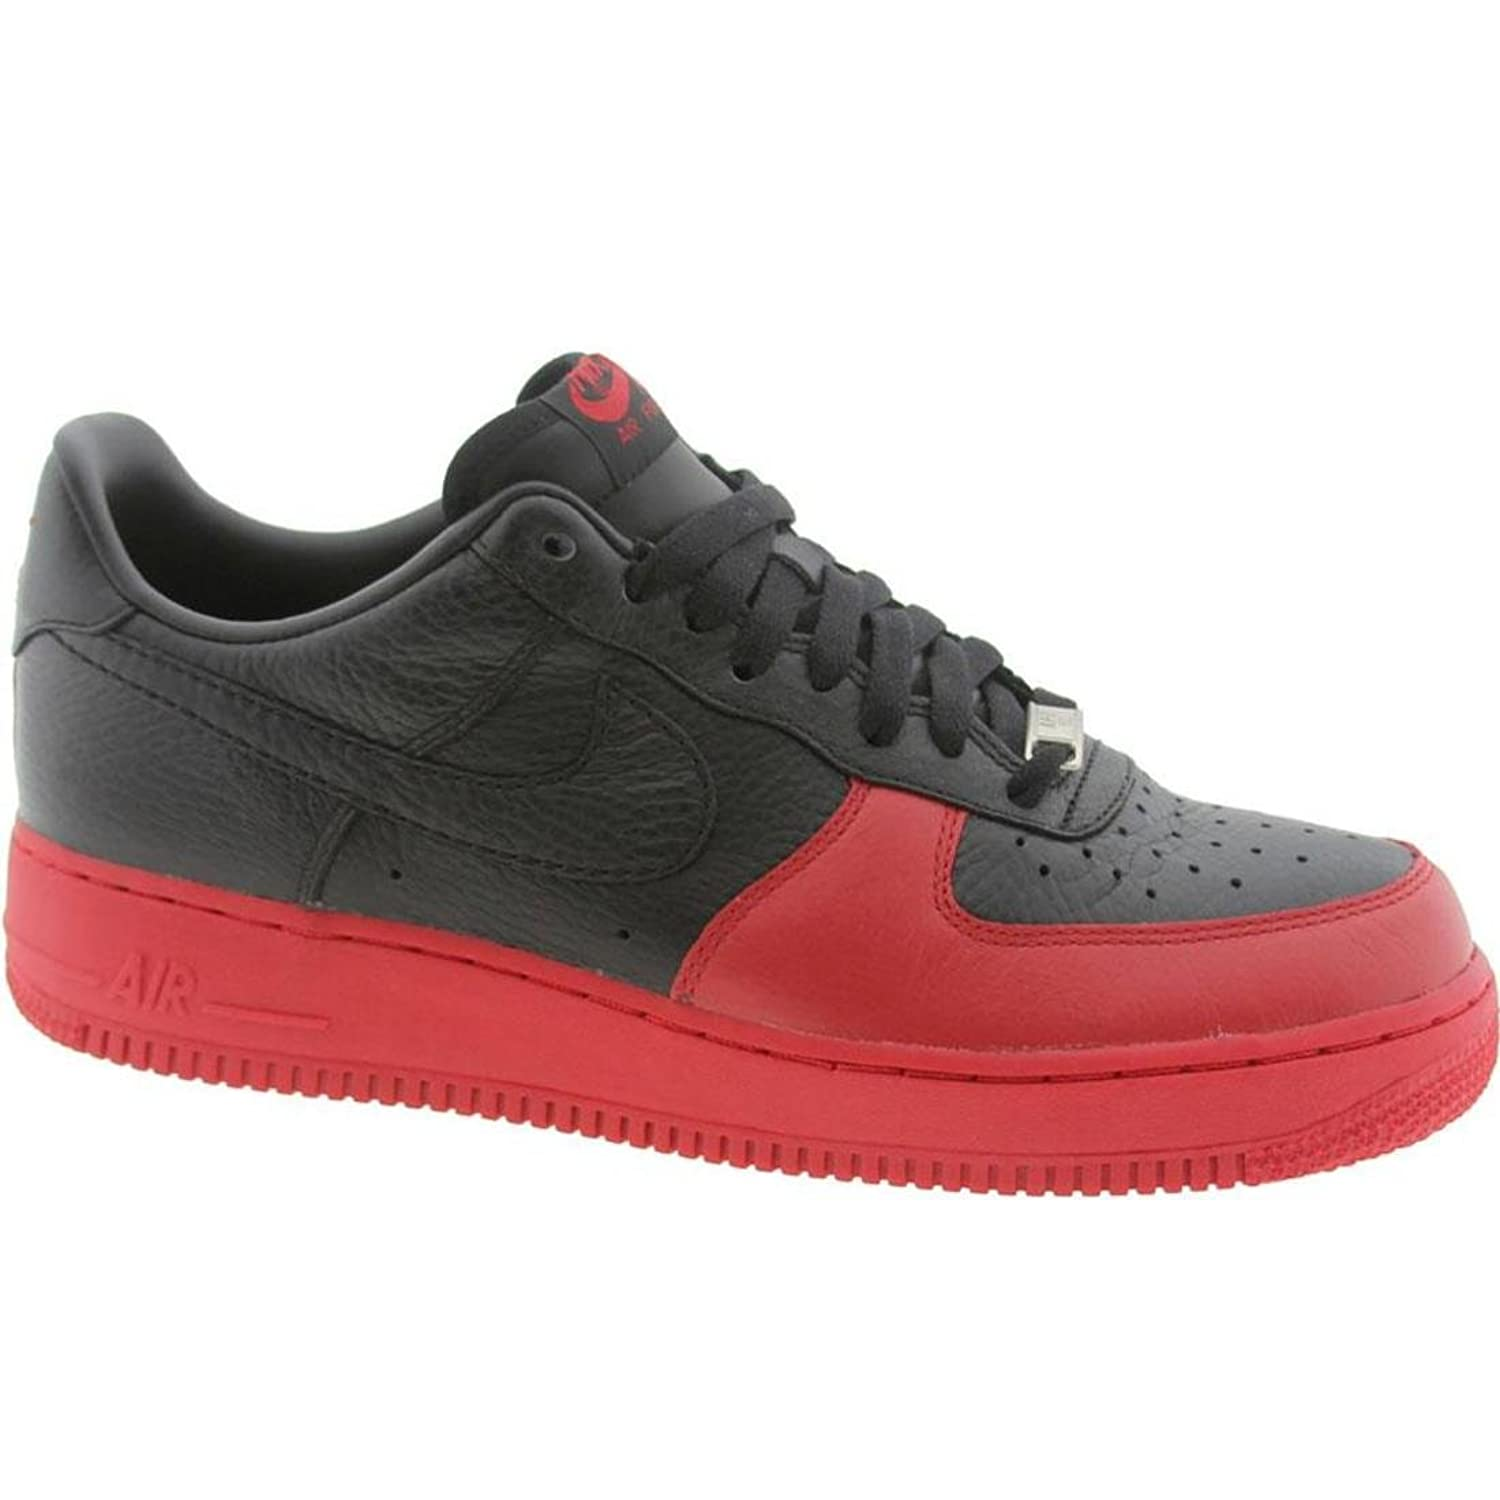 Nike Air Force 1 Low (varsity Rød / Svart) Menn PiGul8if